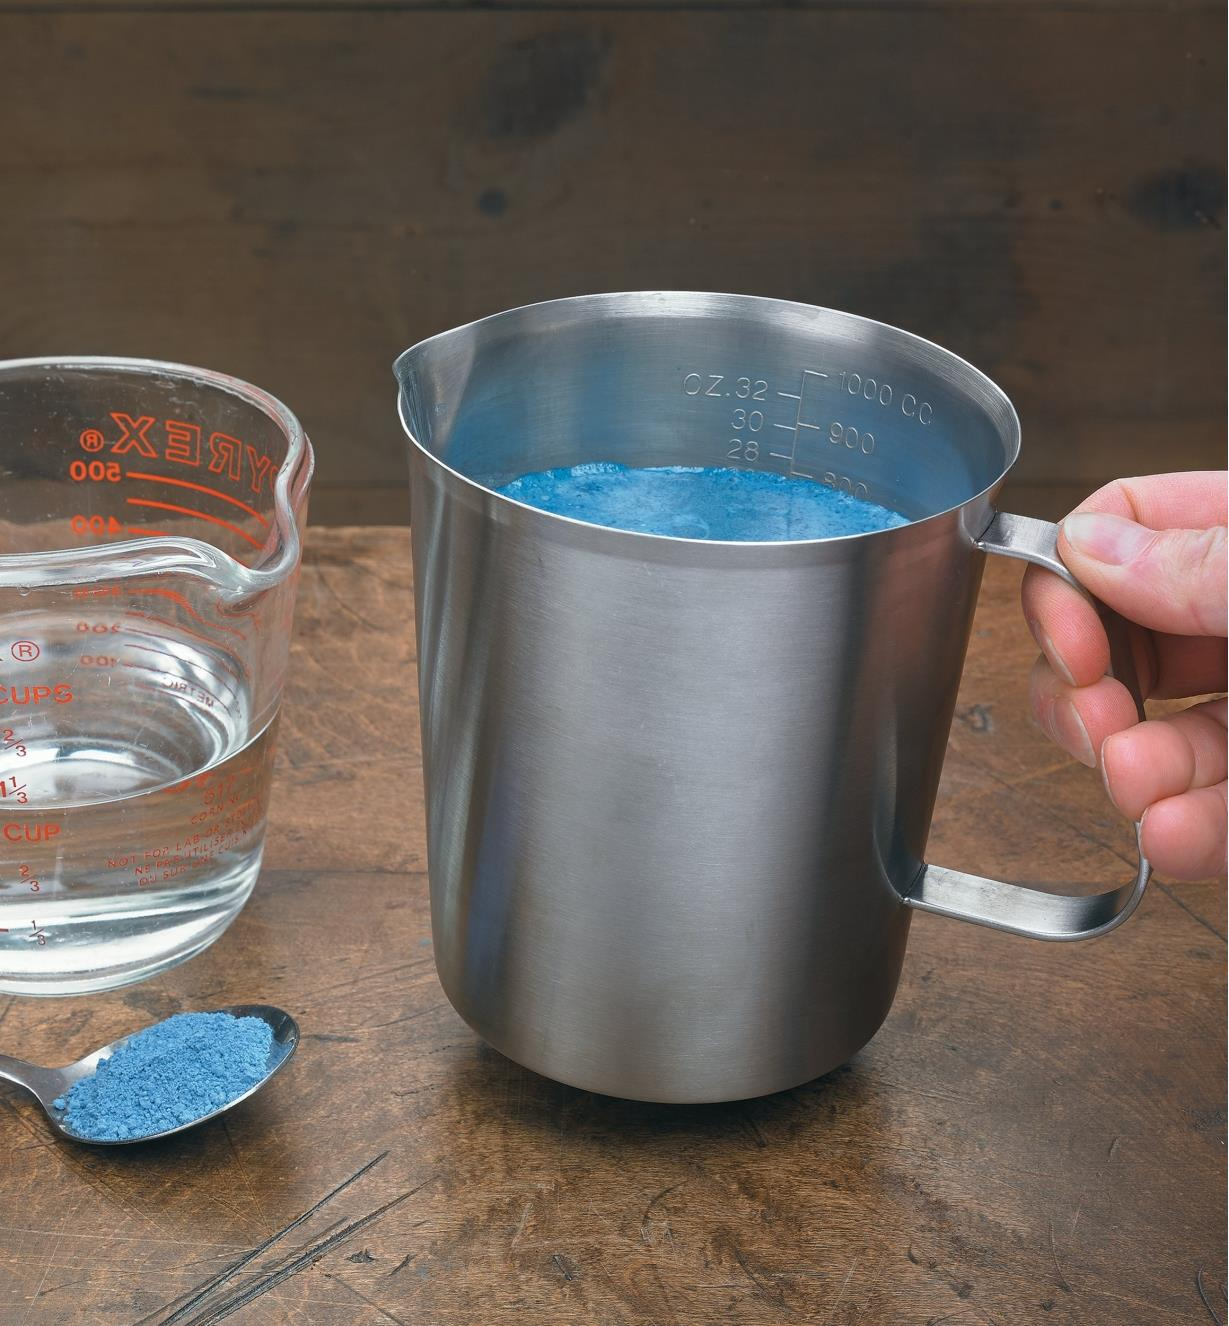 09A0374 - Workshop Measuring Pitcher, 32 fl oz (1l)